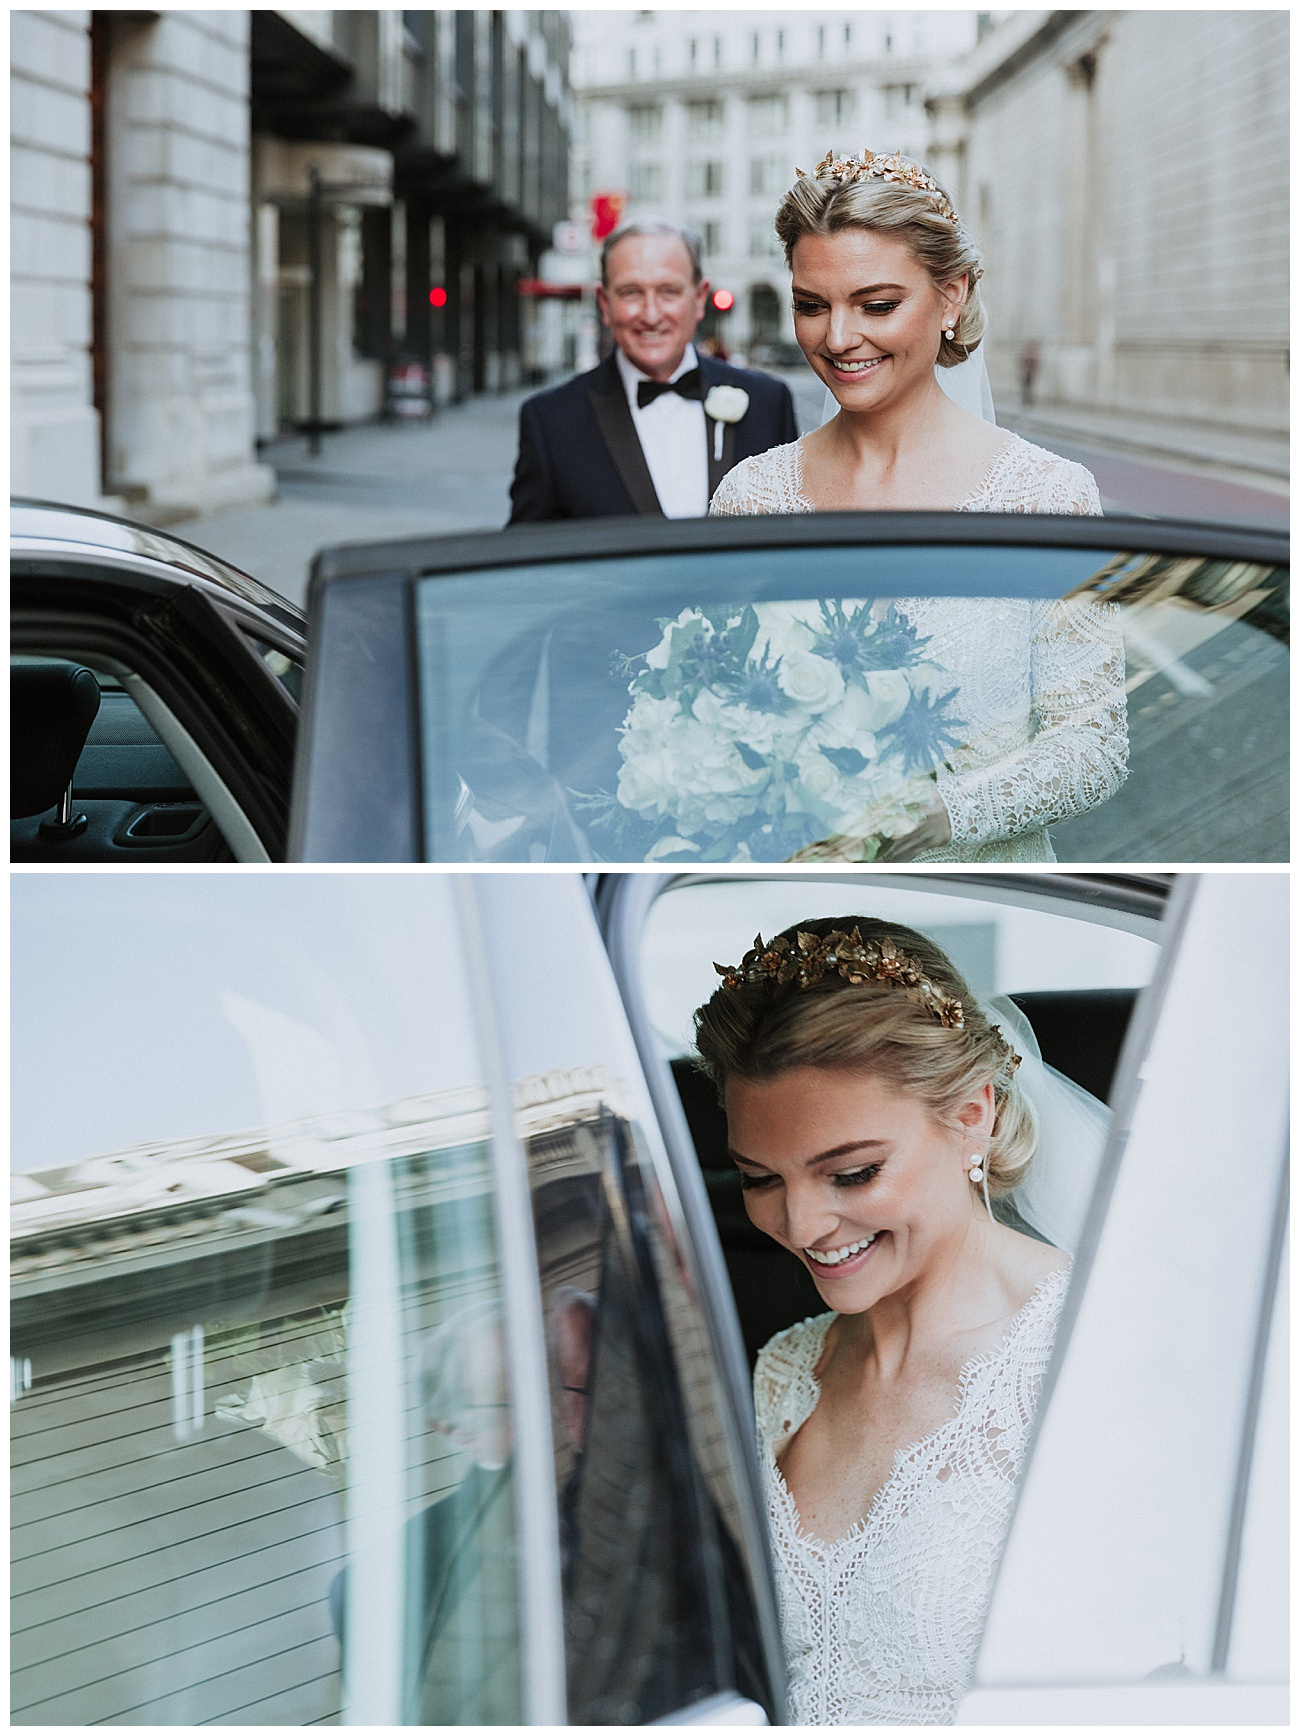 The happy bride gets into her wedding car with dad helping her with the door